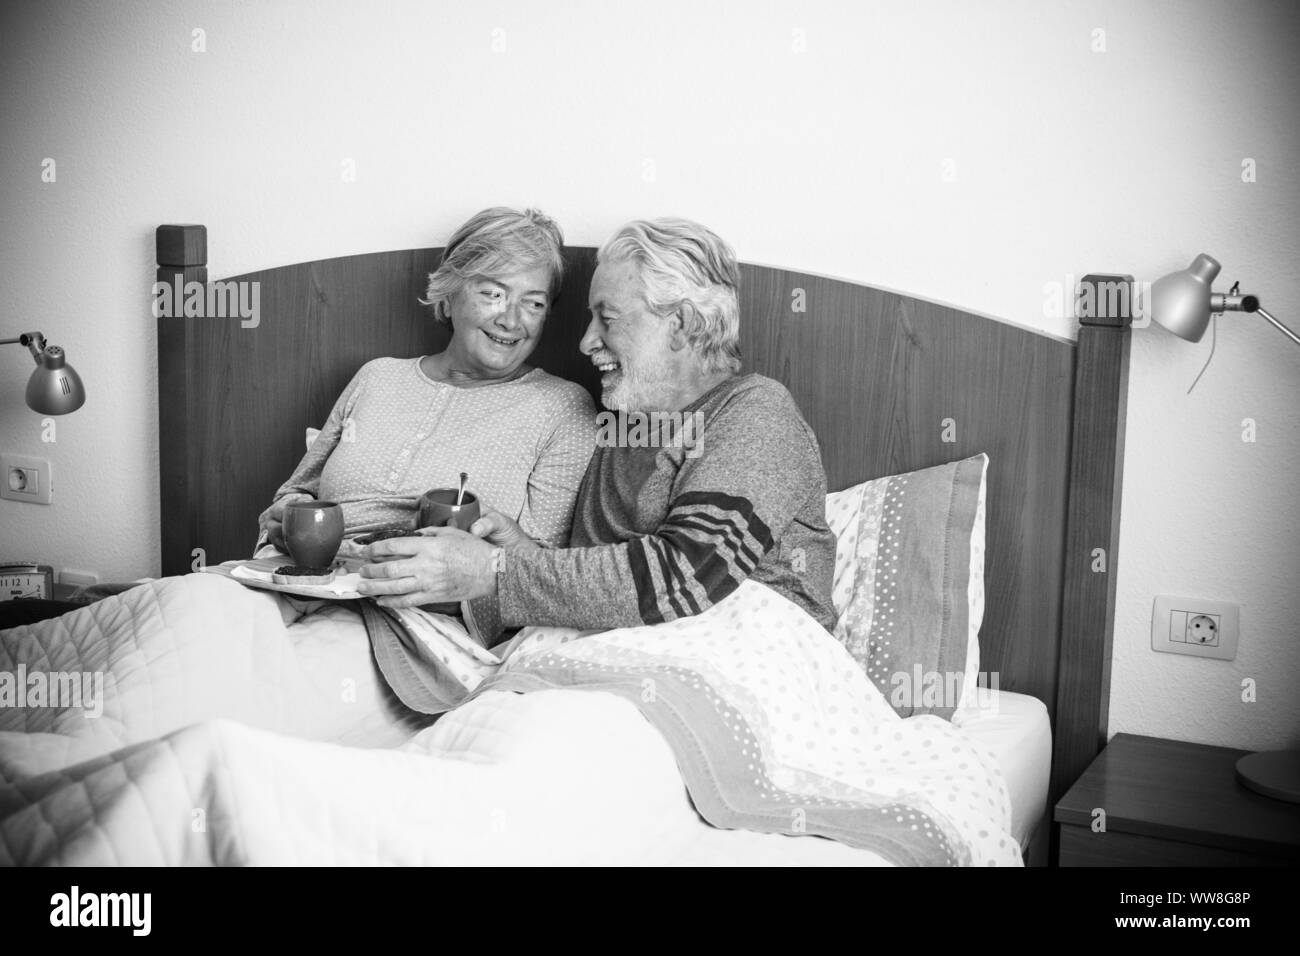 caucasian aged couple doing breakfast at home in the bed, nice natural scene at home for togetherness life concept, love and carefree people married, laughing together starting the day in the morning Stock Photo